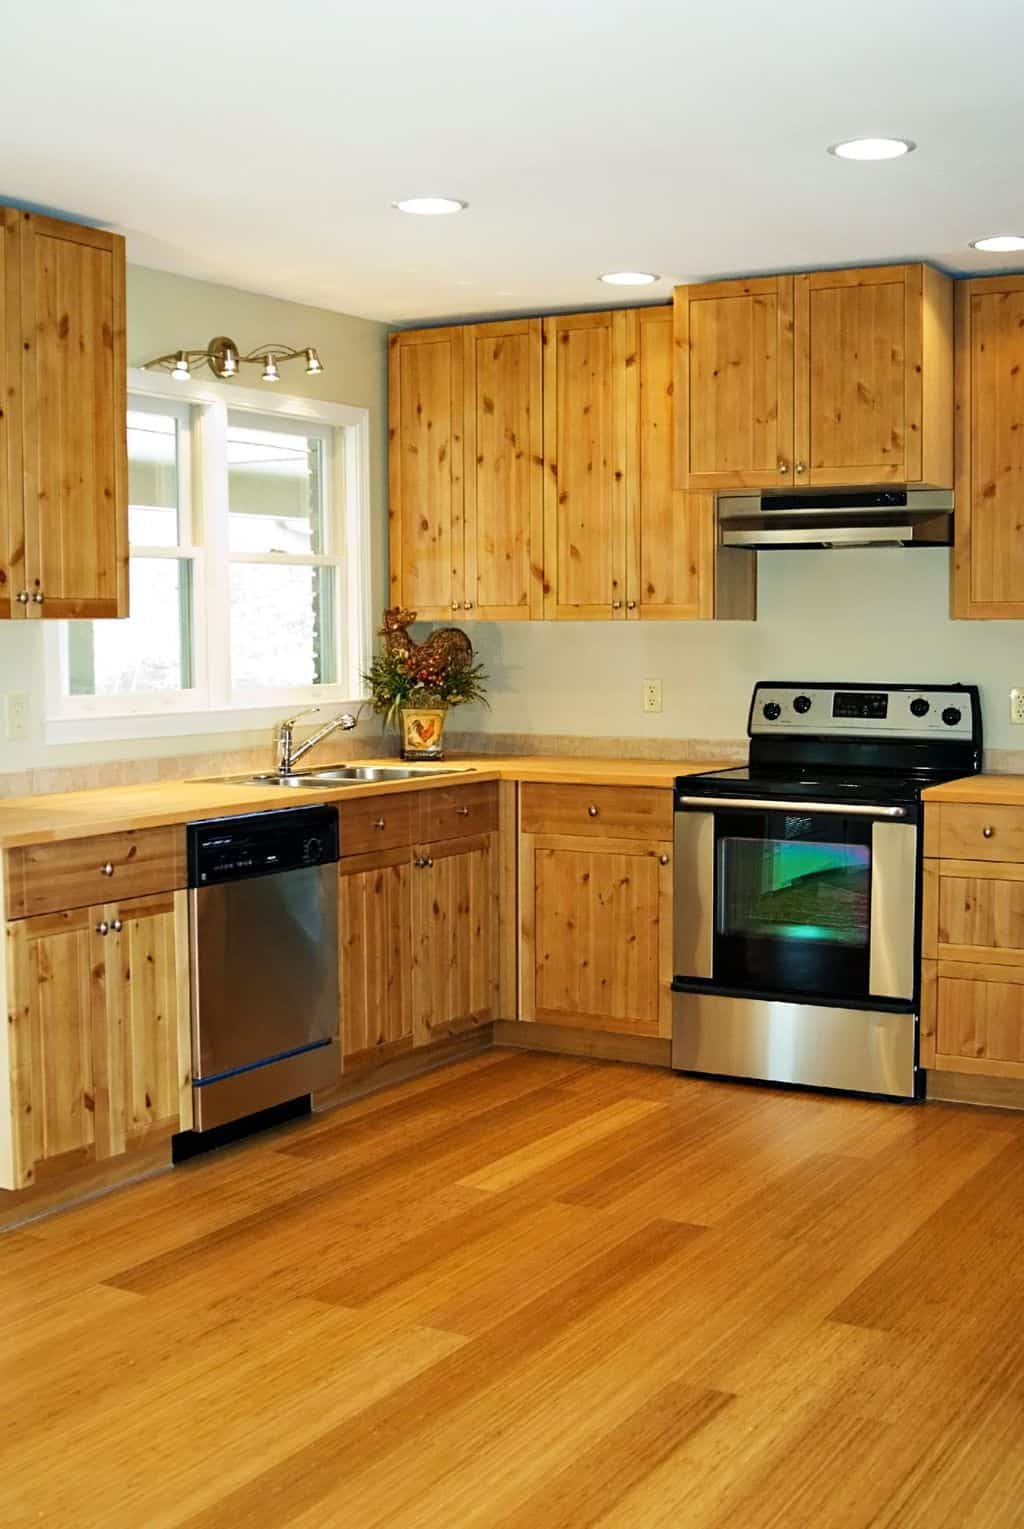 Kitchen Flooring Options Pros And Cons Top 10 Crucial Bamboo Flooring Pros And Cons Theflooringlady